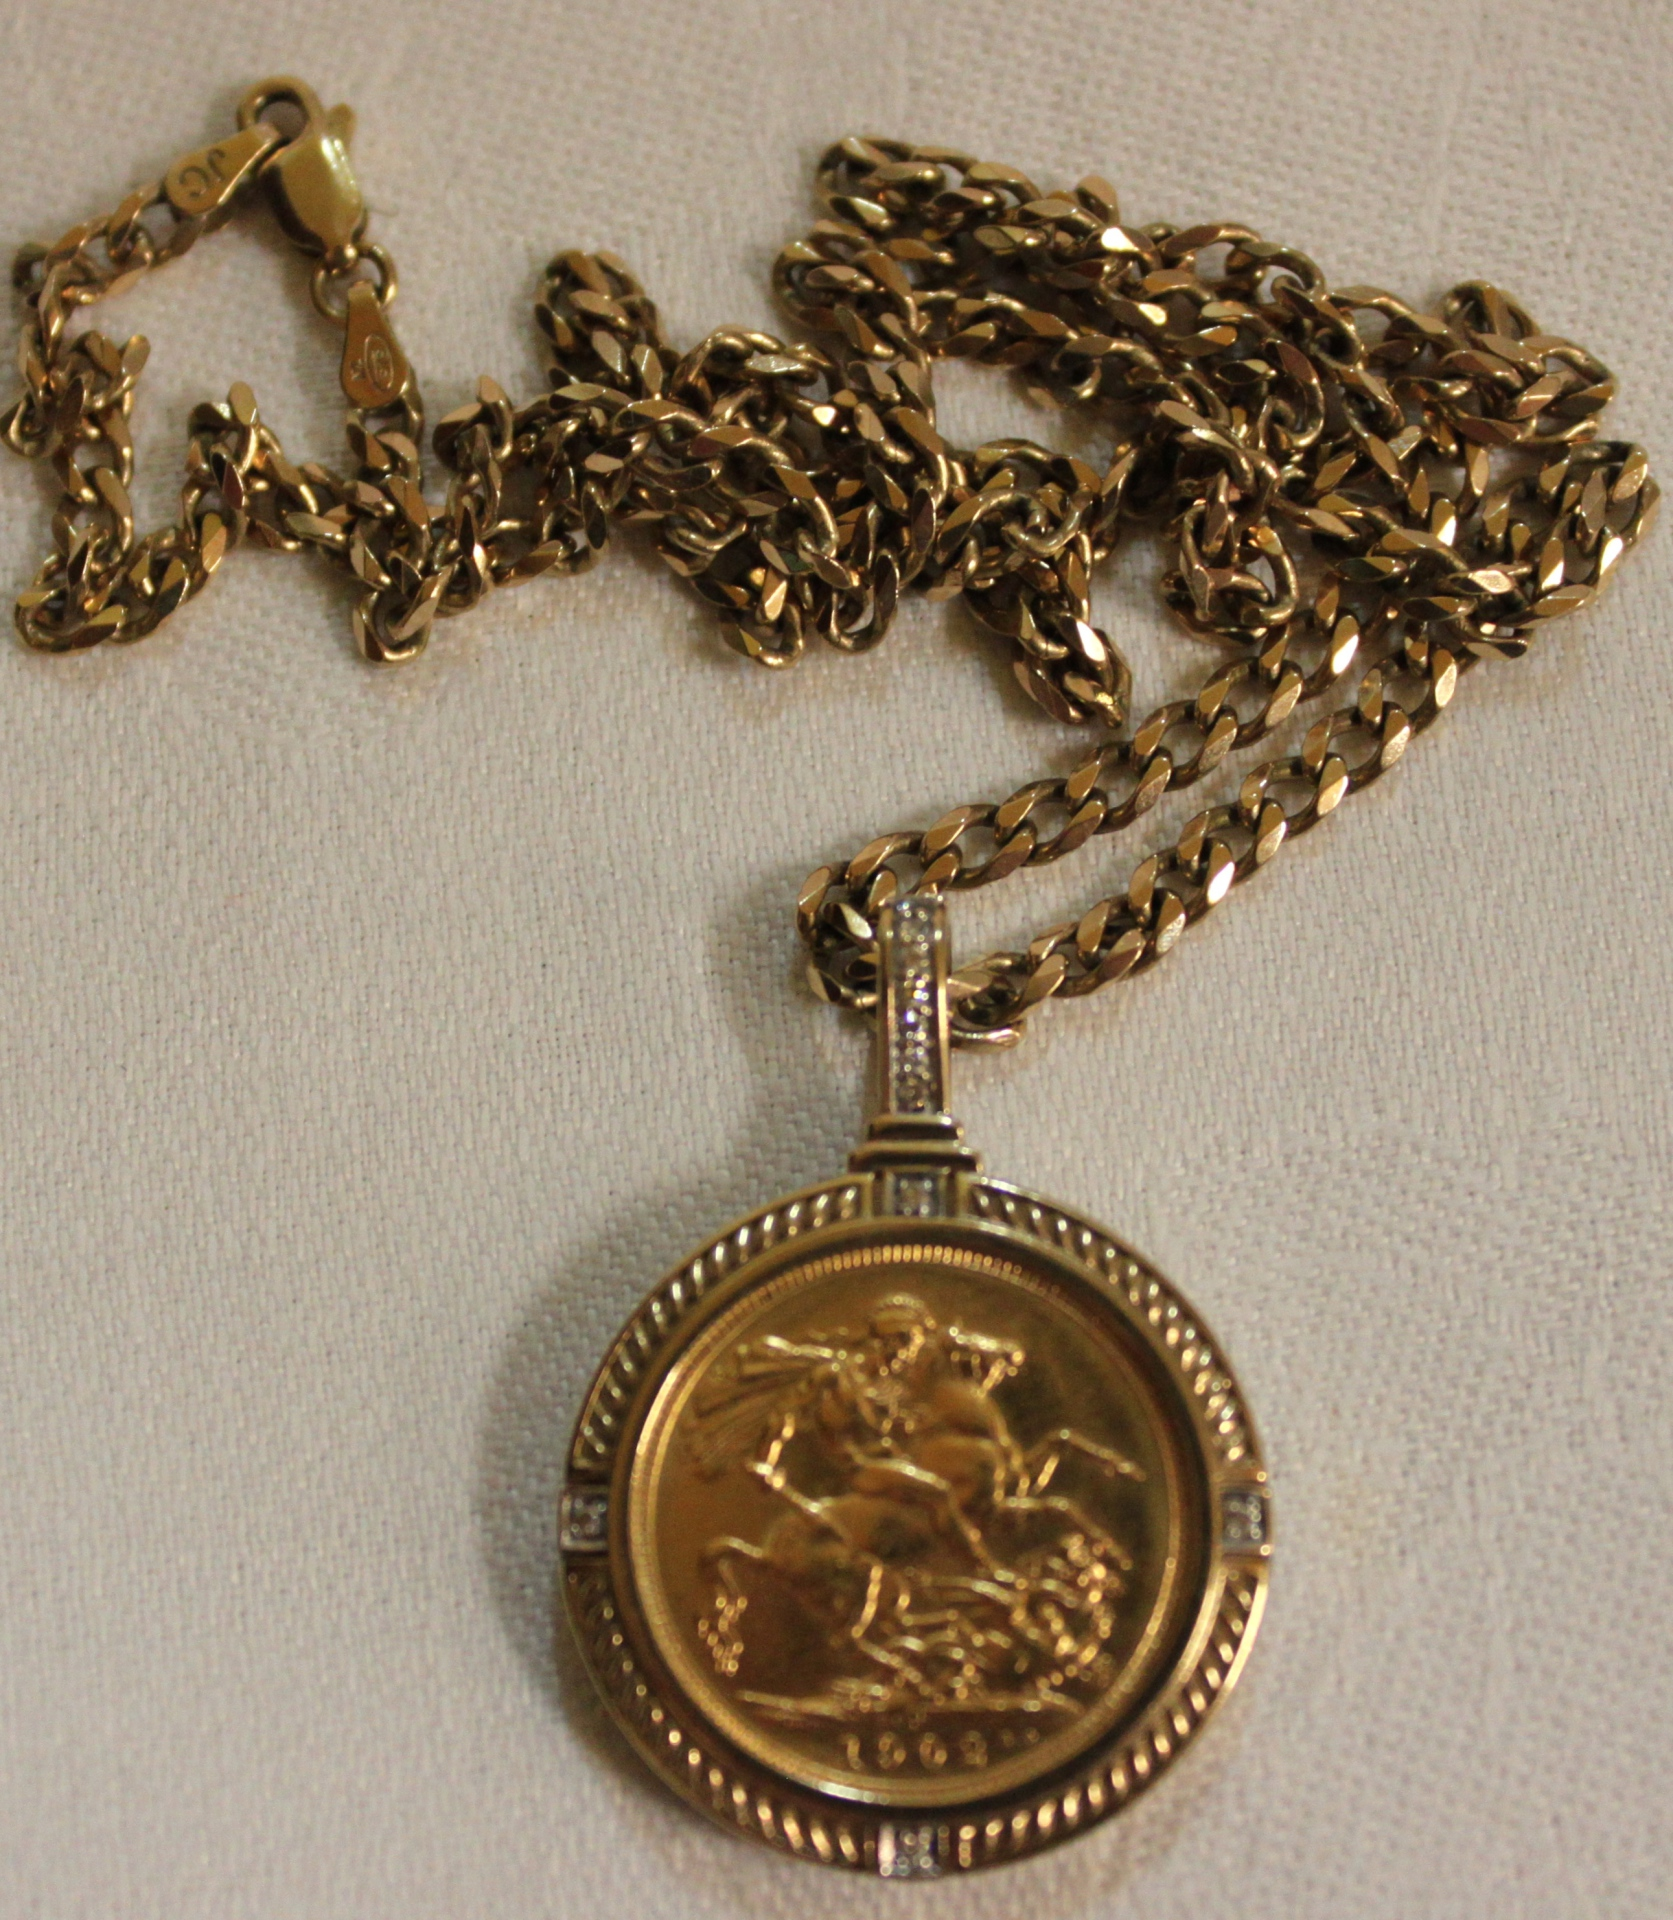 Gold Sovereign in 9ct gold holder with chain